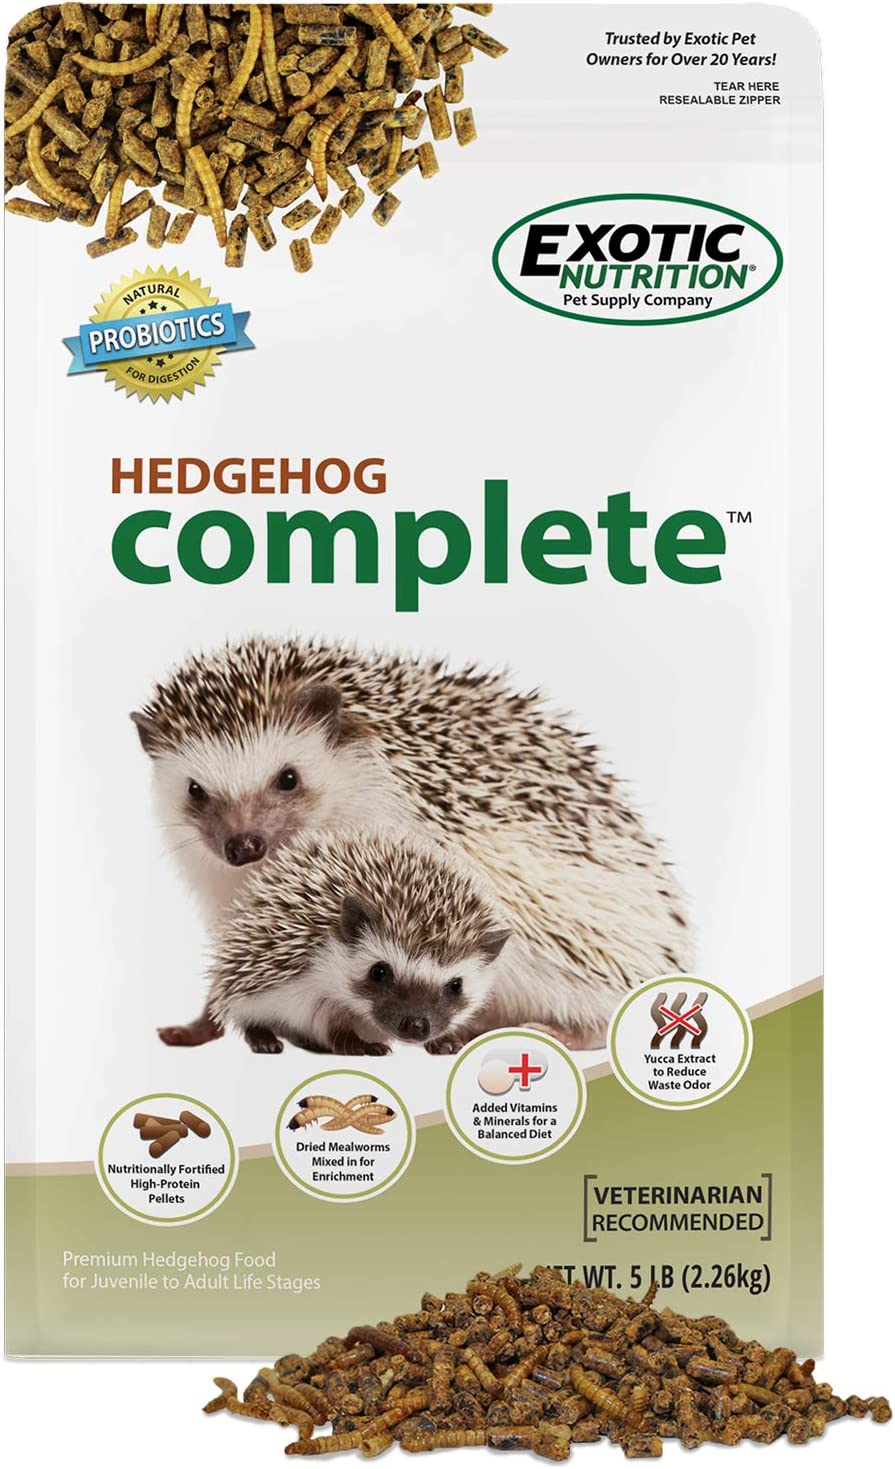 Hedgehog Complete 5 lb - Nutritionally Complete Natural Healthy High Protein Pellets & Dried Mealworms - Food for Pet Hedgehogs